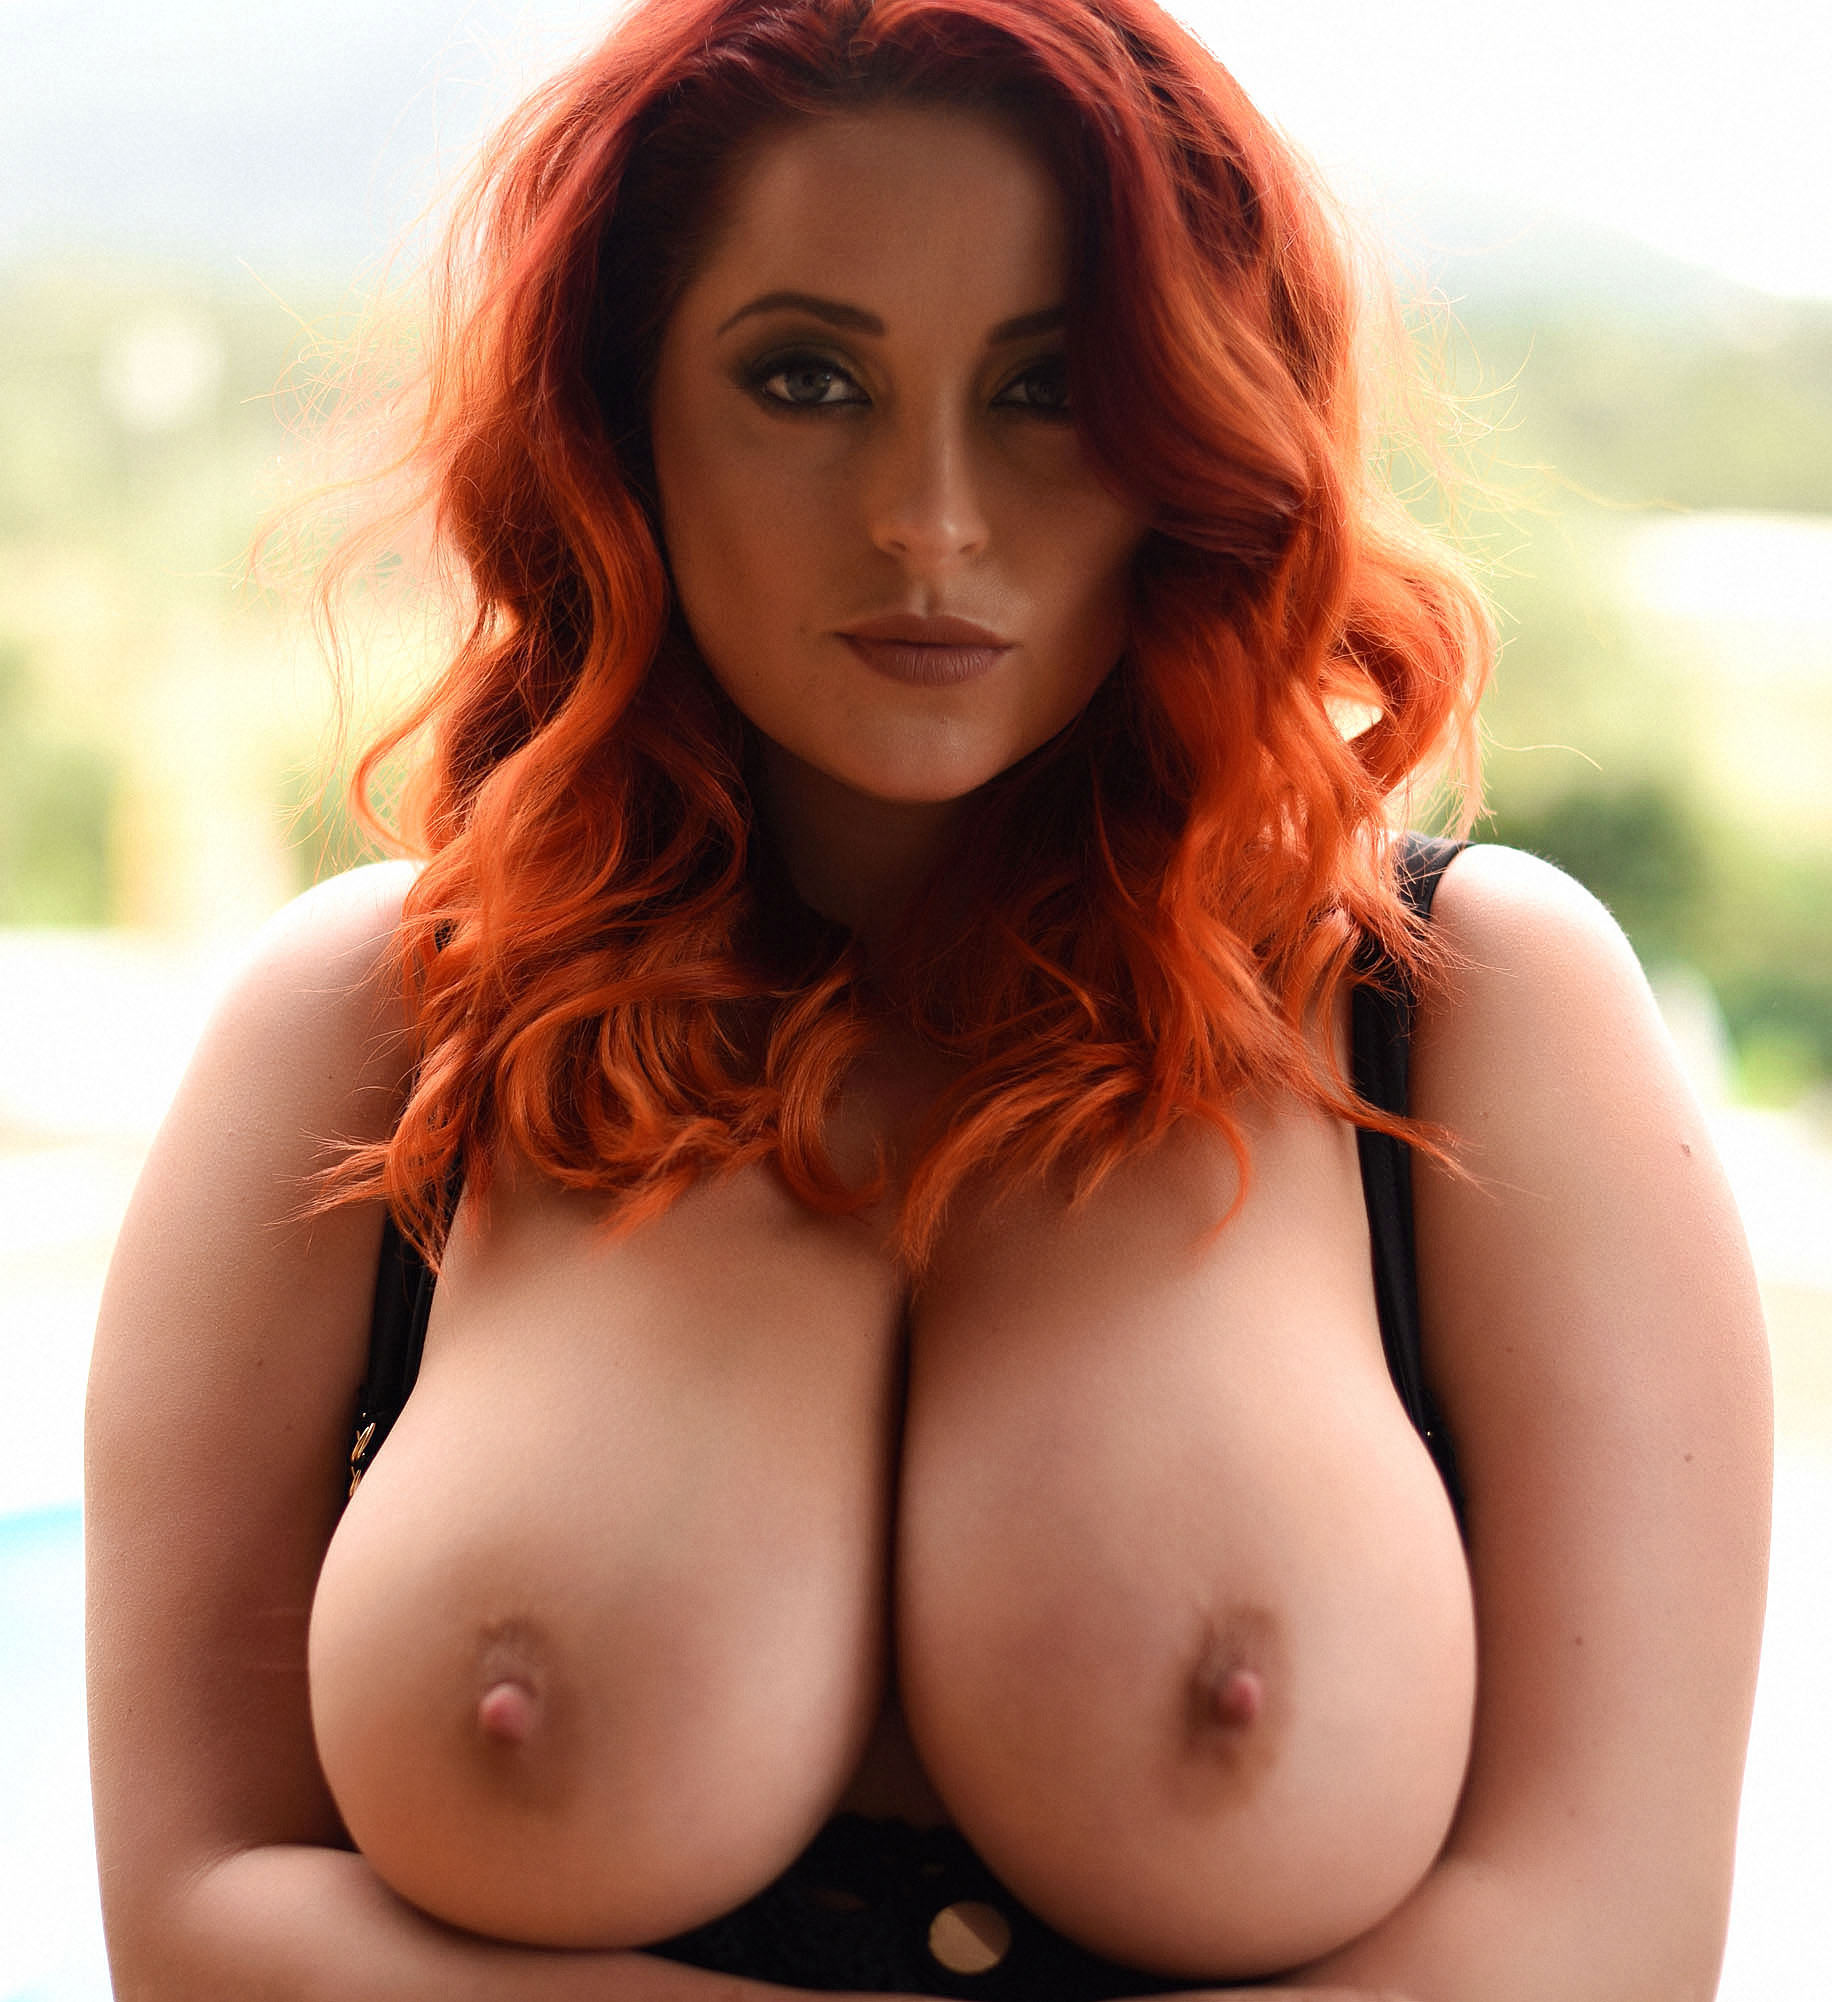 Pin On Gorgeous Redheads